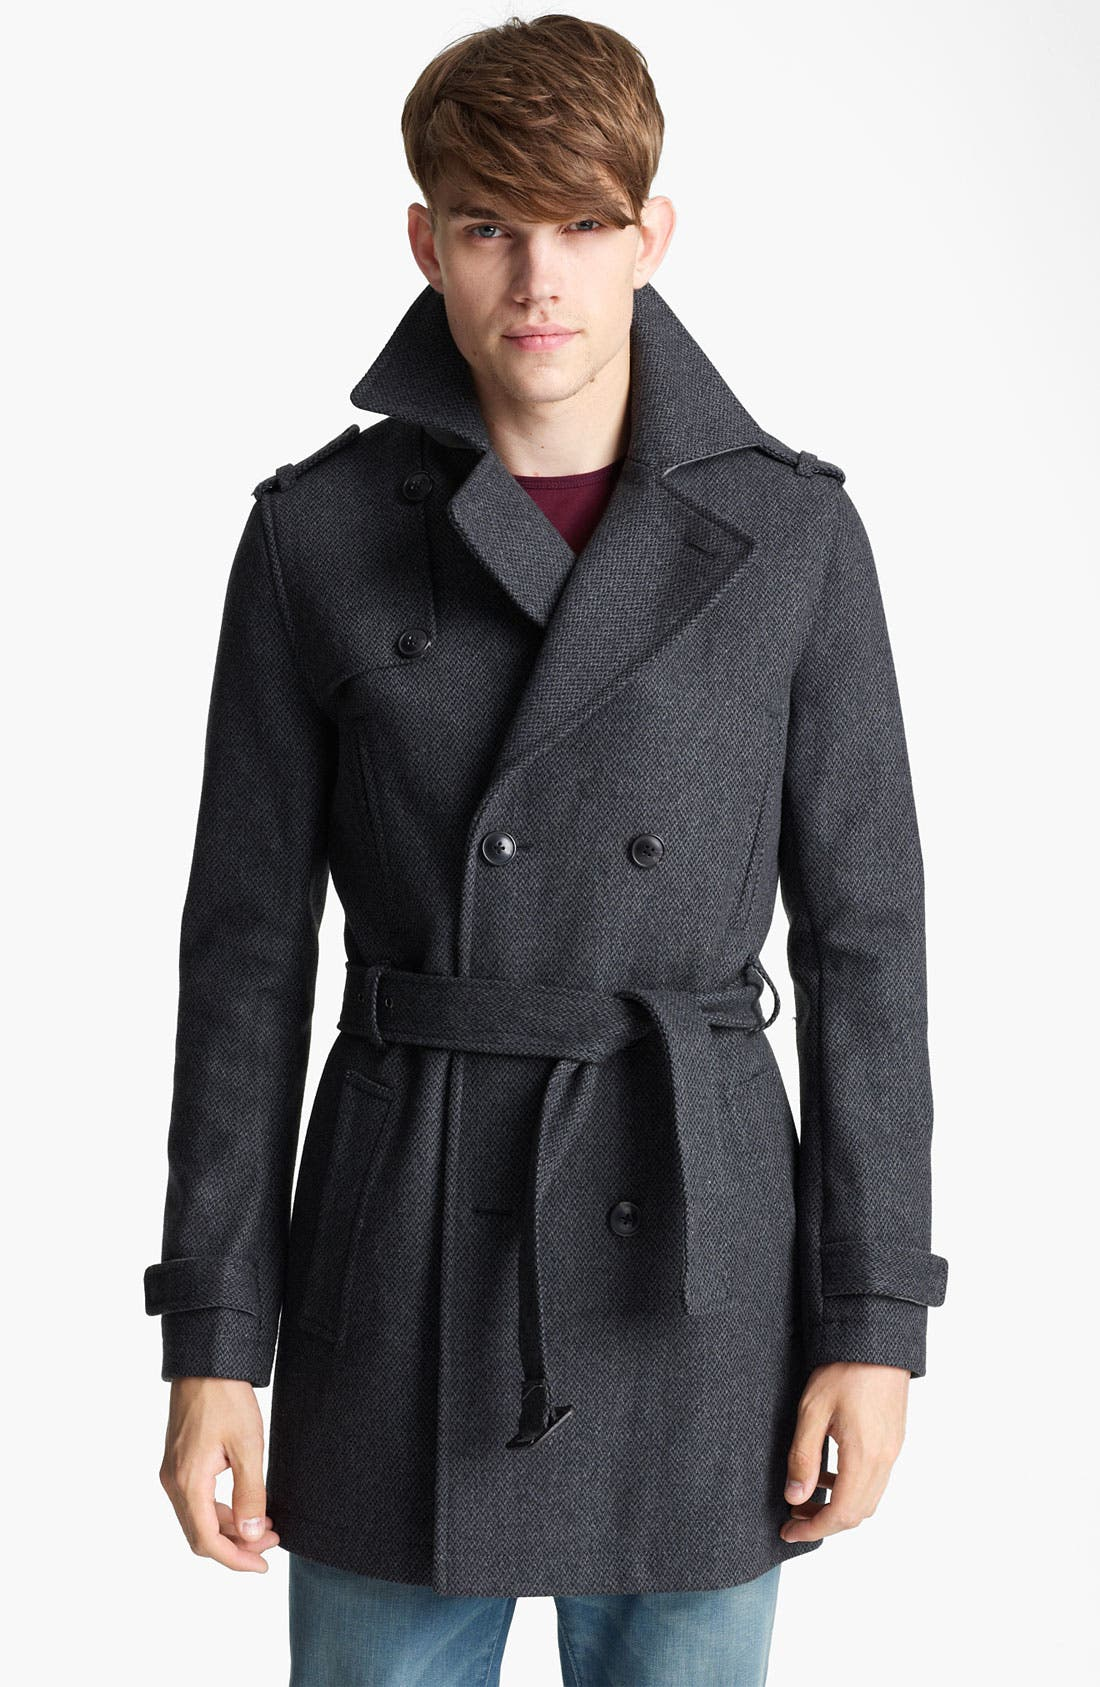 Alternate Image 1 Selected - Topman Wool Blend Trench Coat